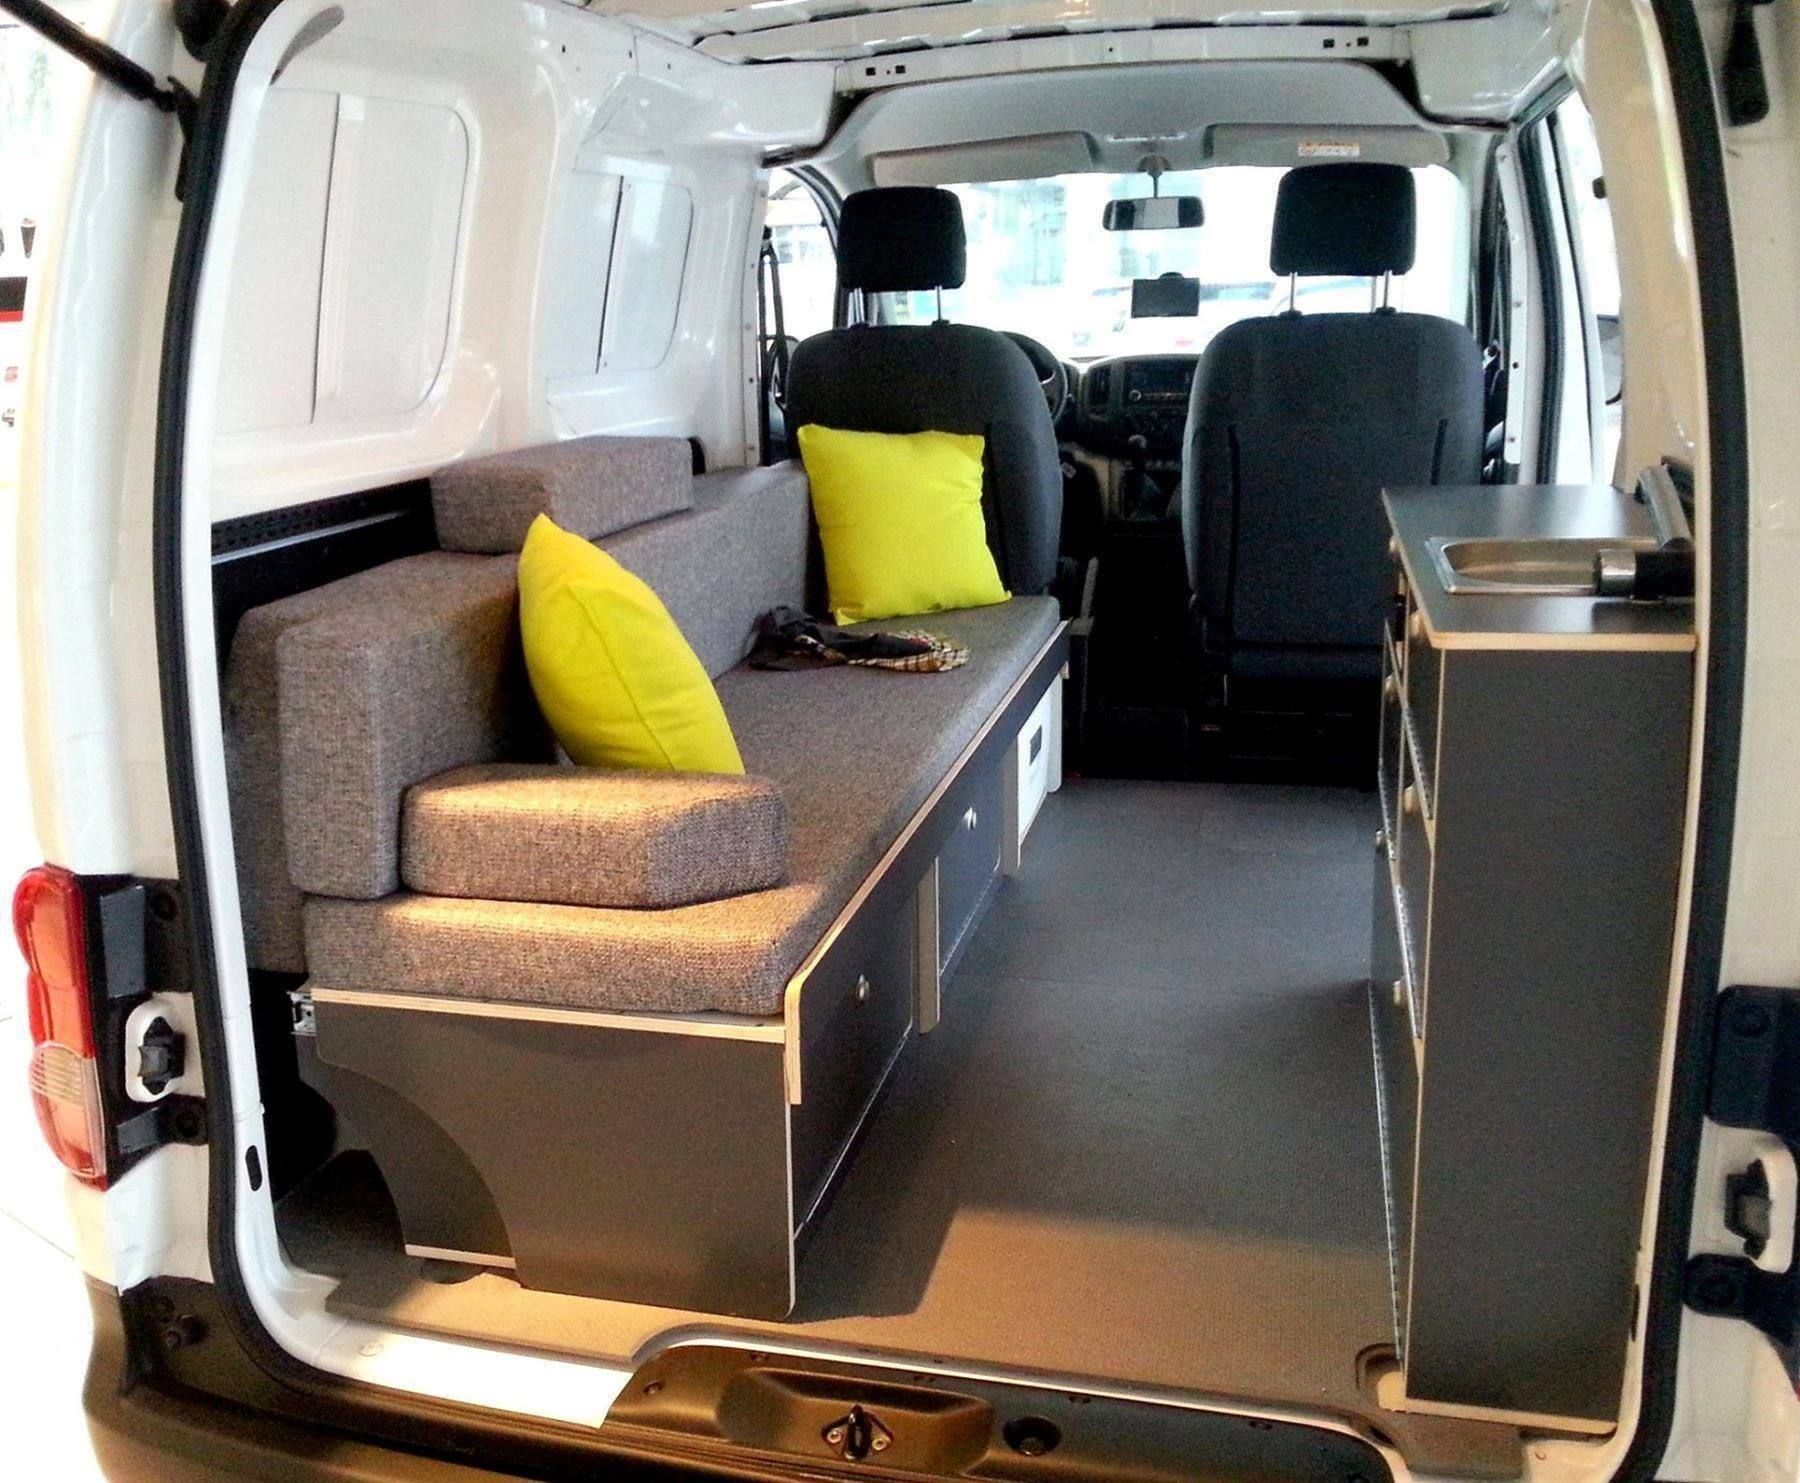 bett sofa f r nissan nv200 mini camper 10 29 00 1 evalia camper pinterest. Black Bedroom Furniture Sets. Home Design Ideas